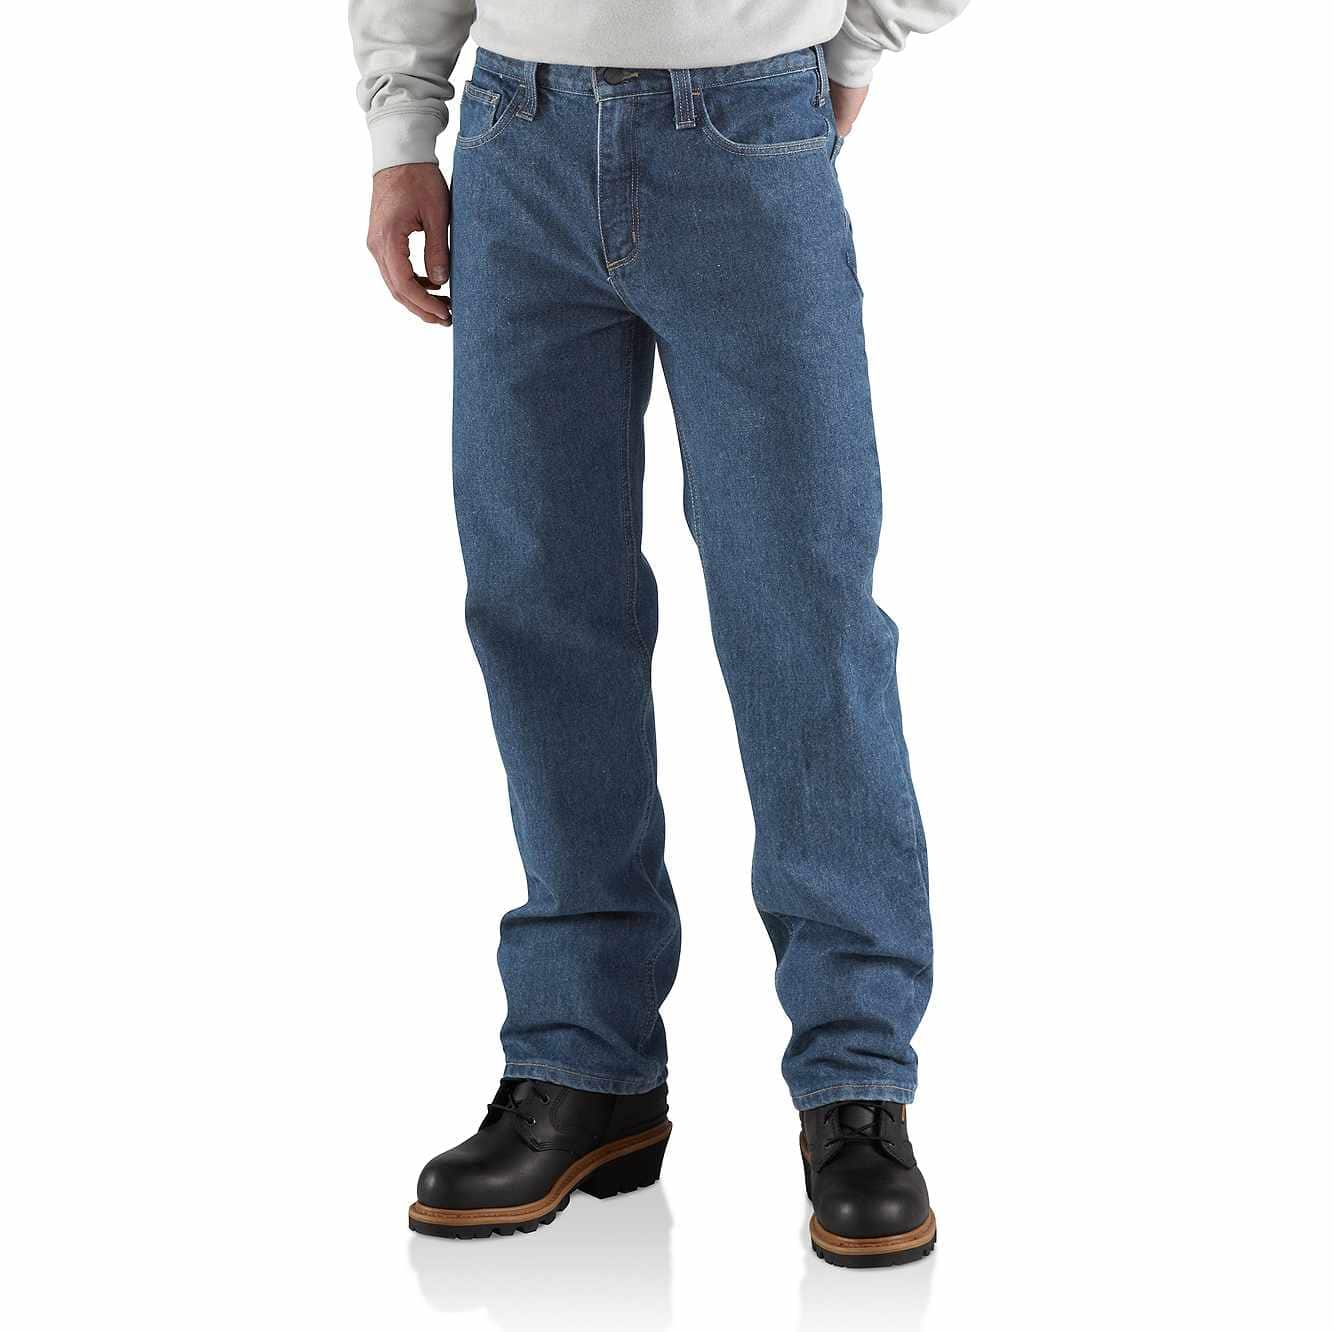 Picture of Flame-Resistant Relaxed-Fit Utility Jean in Midstone